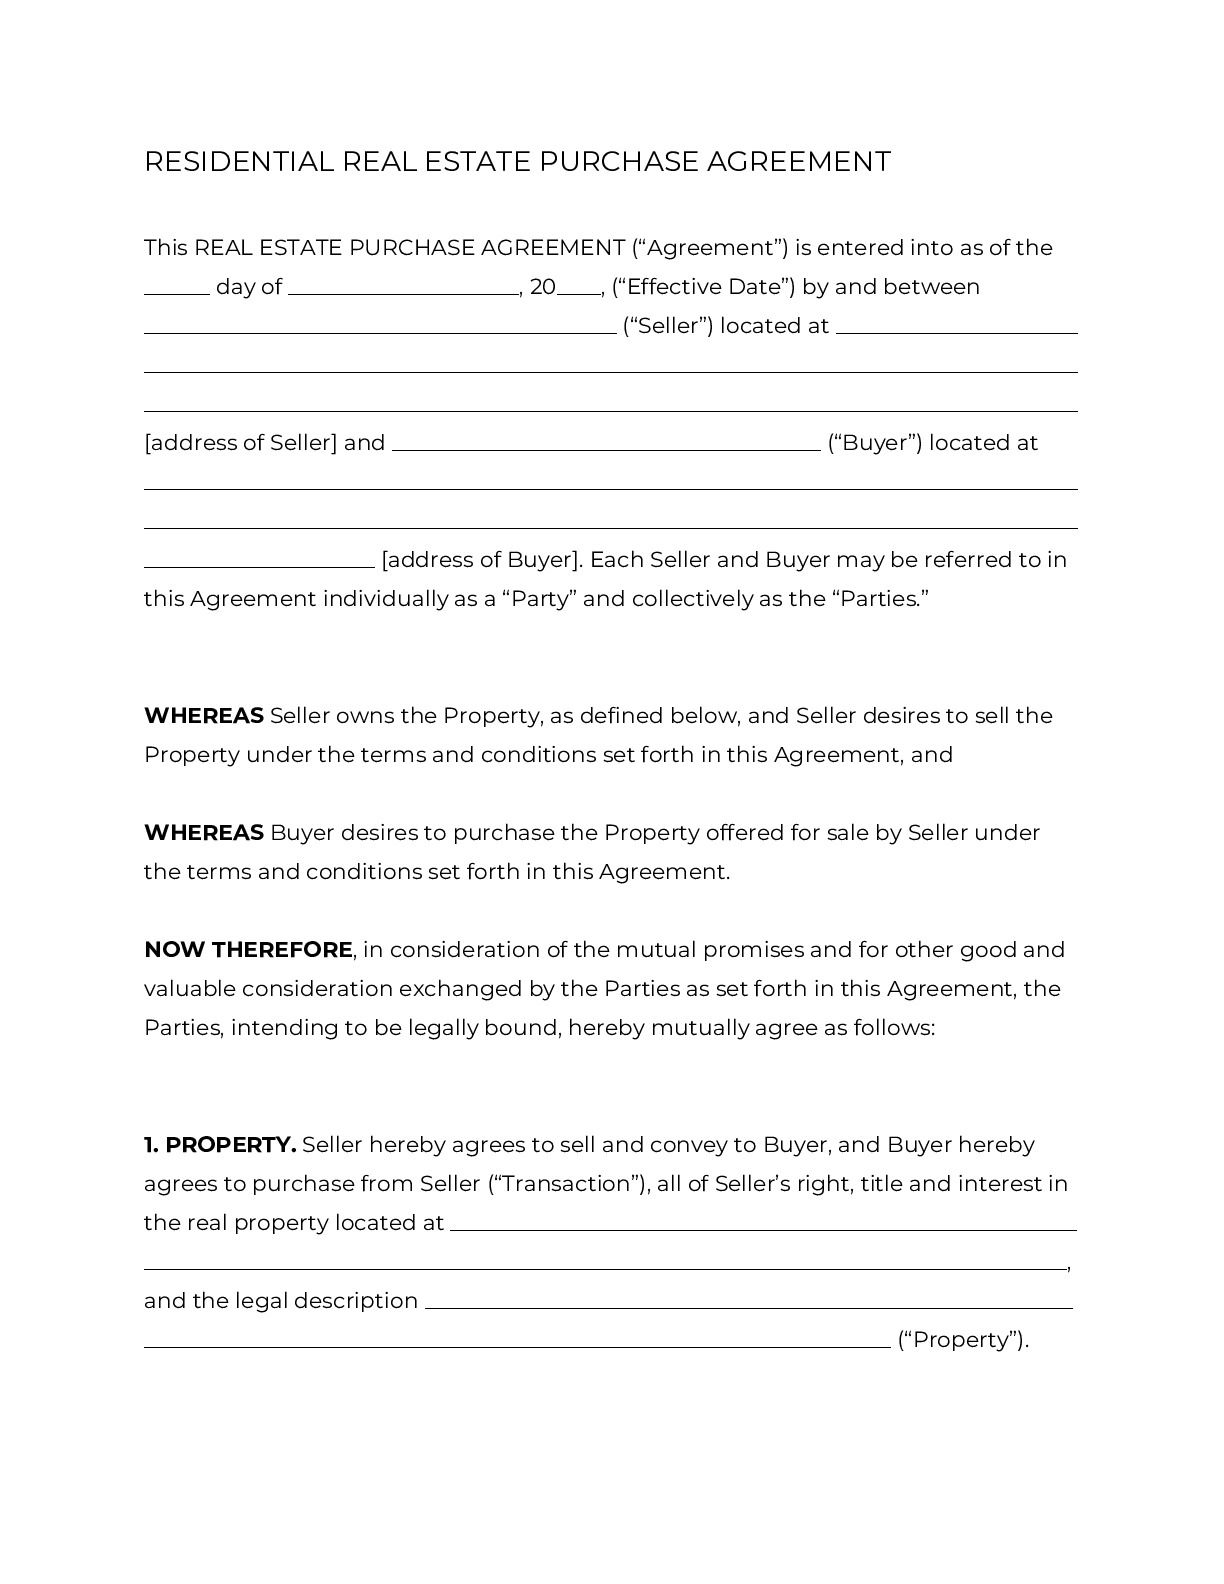 007 Singular Real Estate Purchase Contract Form California High Definition  Agreement Free SaleFull